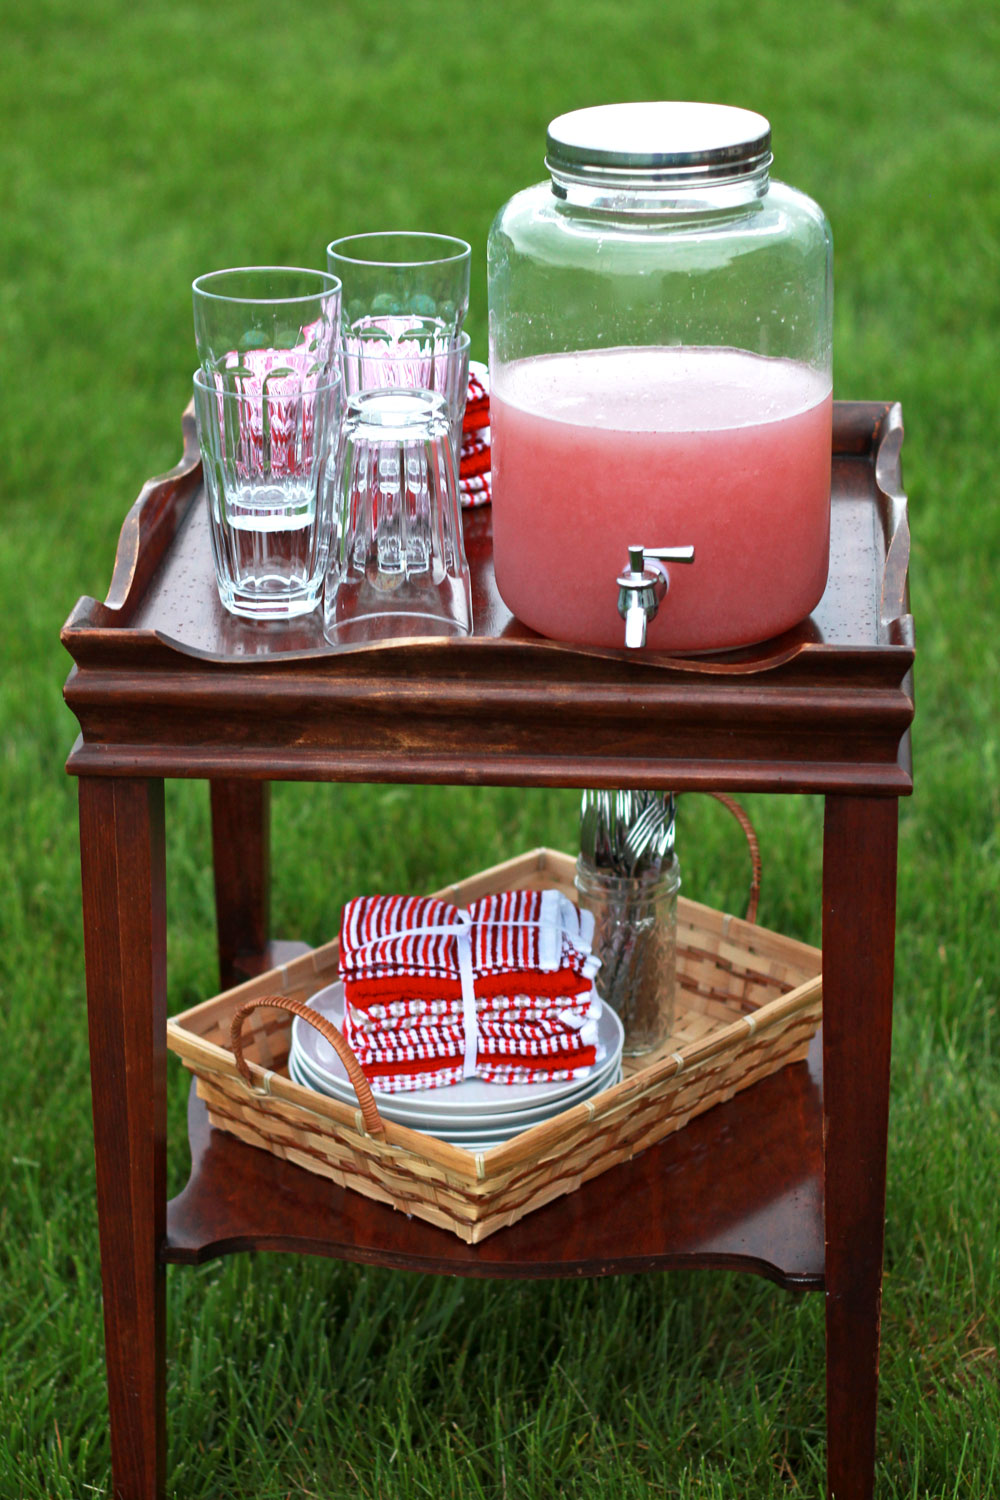 Backyard Barbecue Tips | Perpetually Chic for Wisconsin Cheese